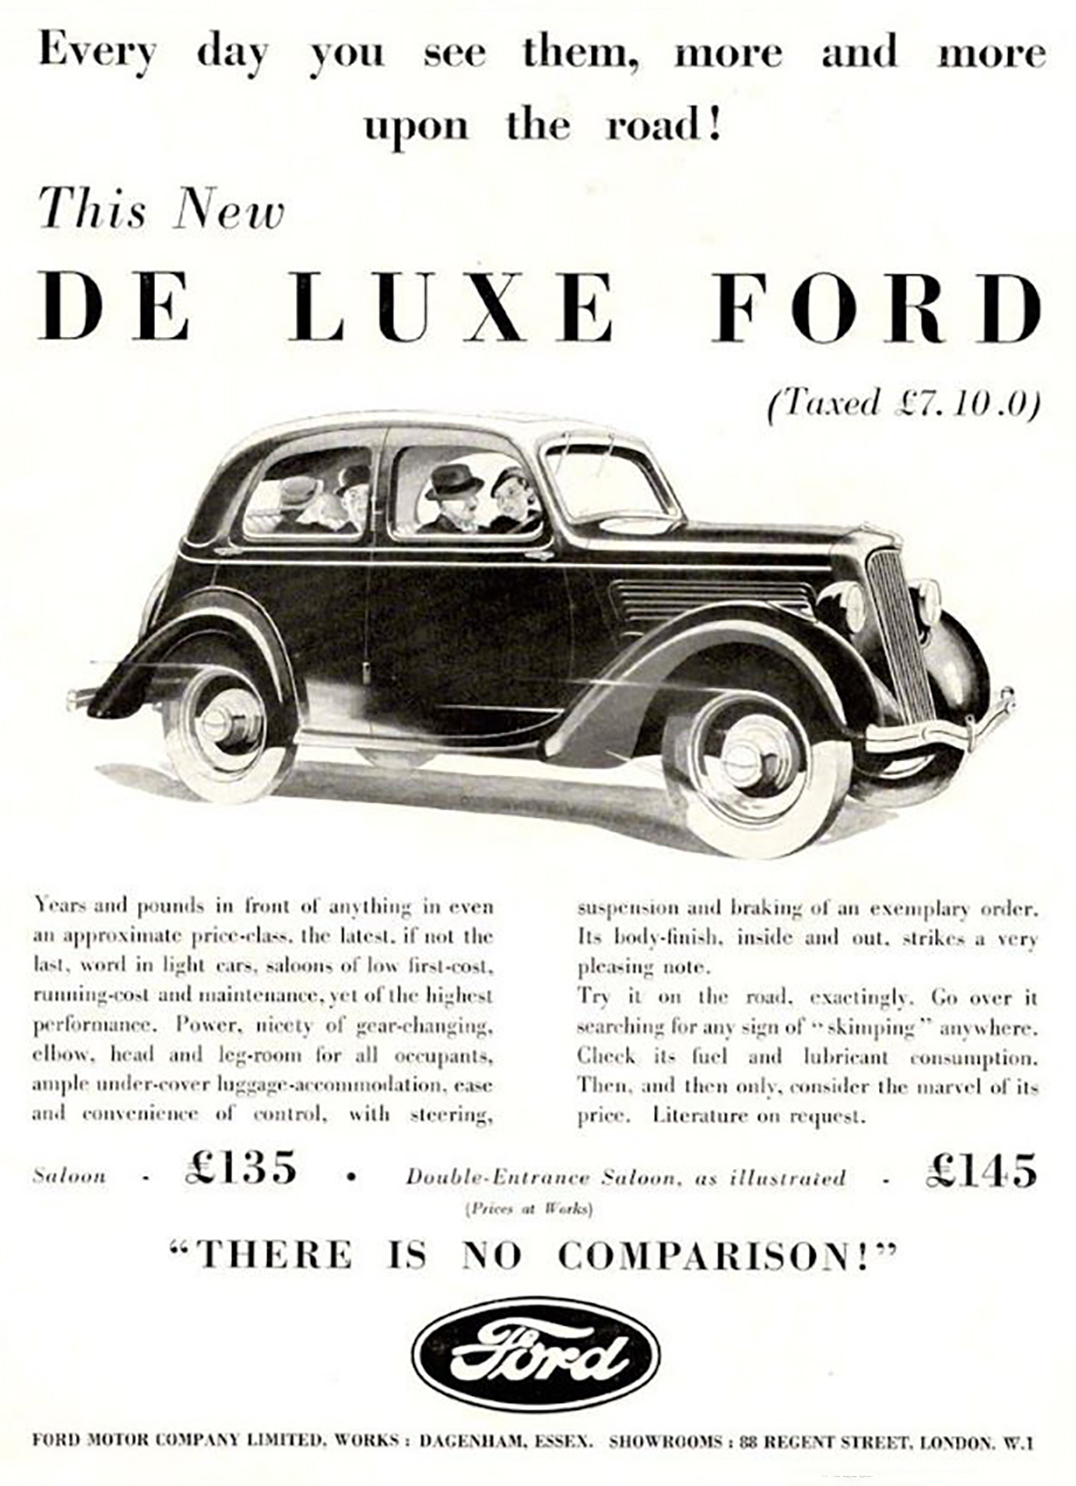 1935 Ford Ad (England)